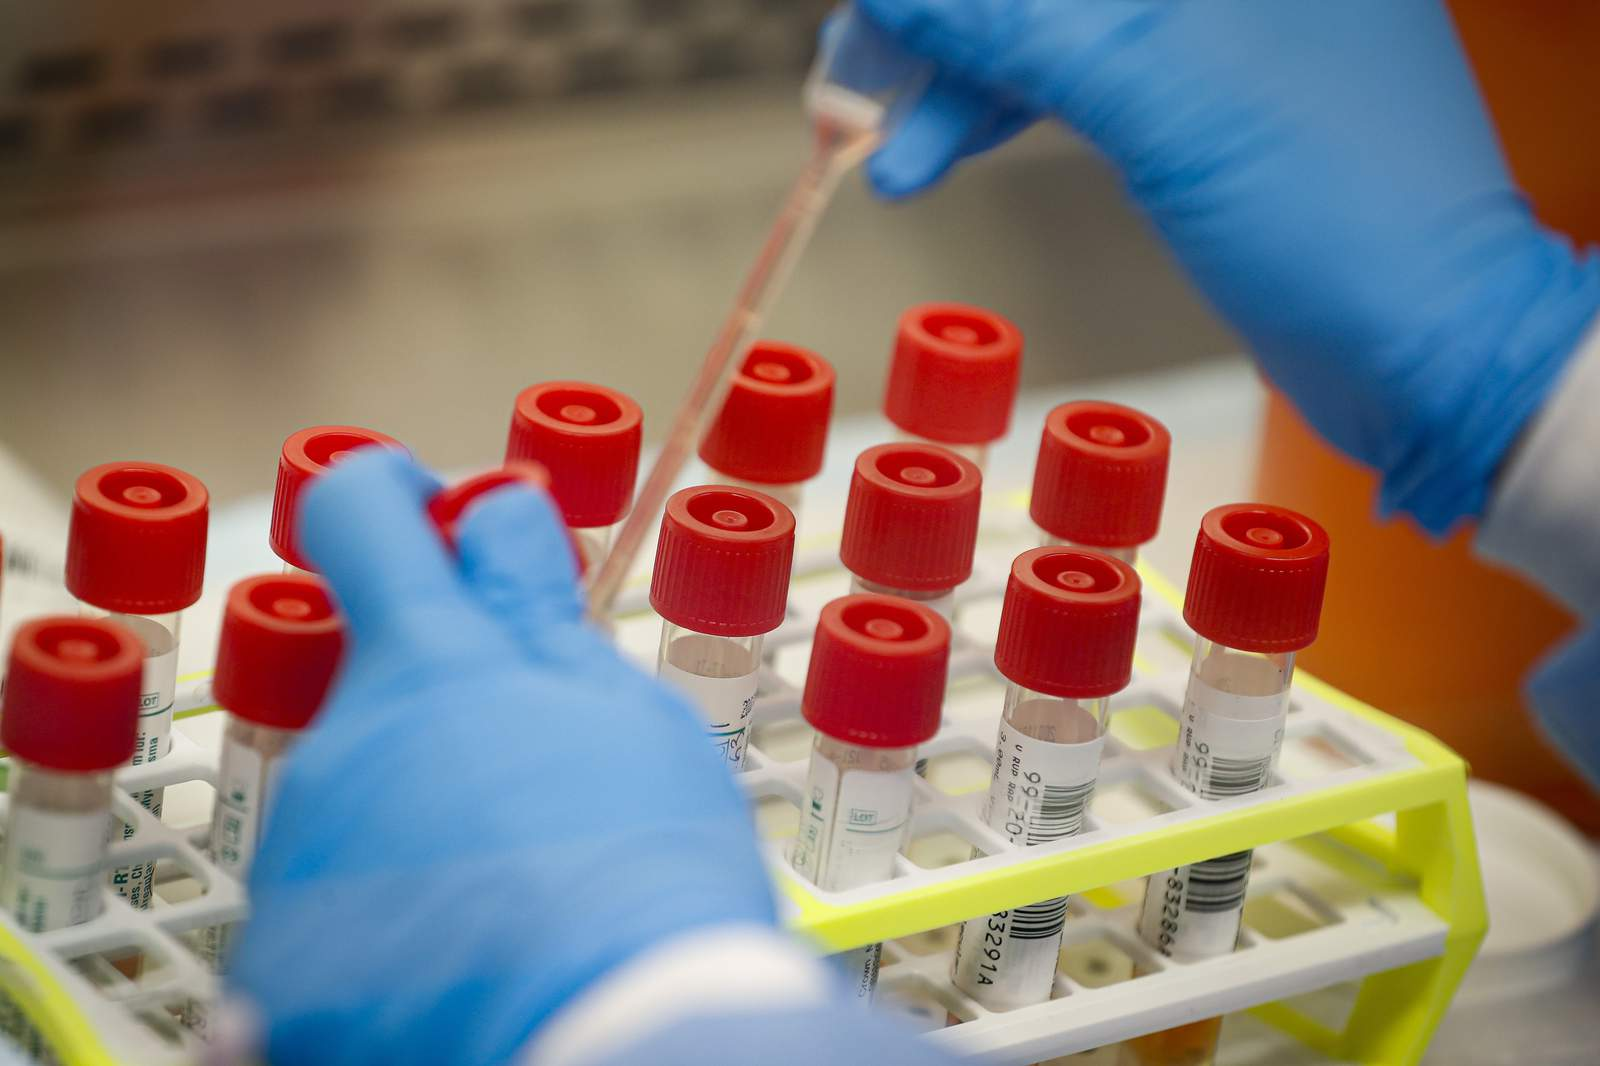 US virus testing faces new headwind: Lab supply shortages